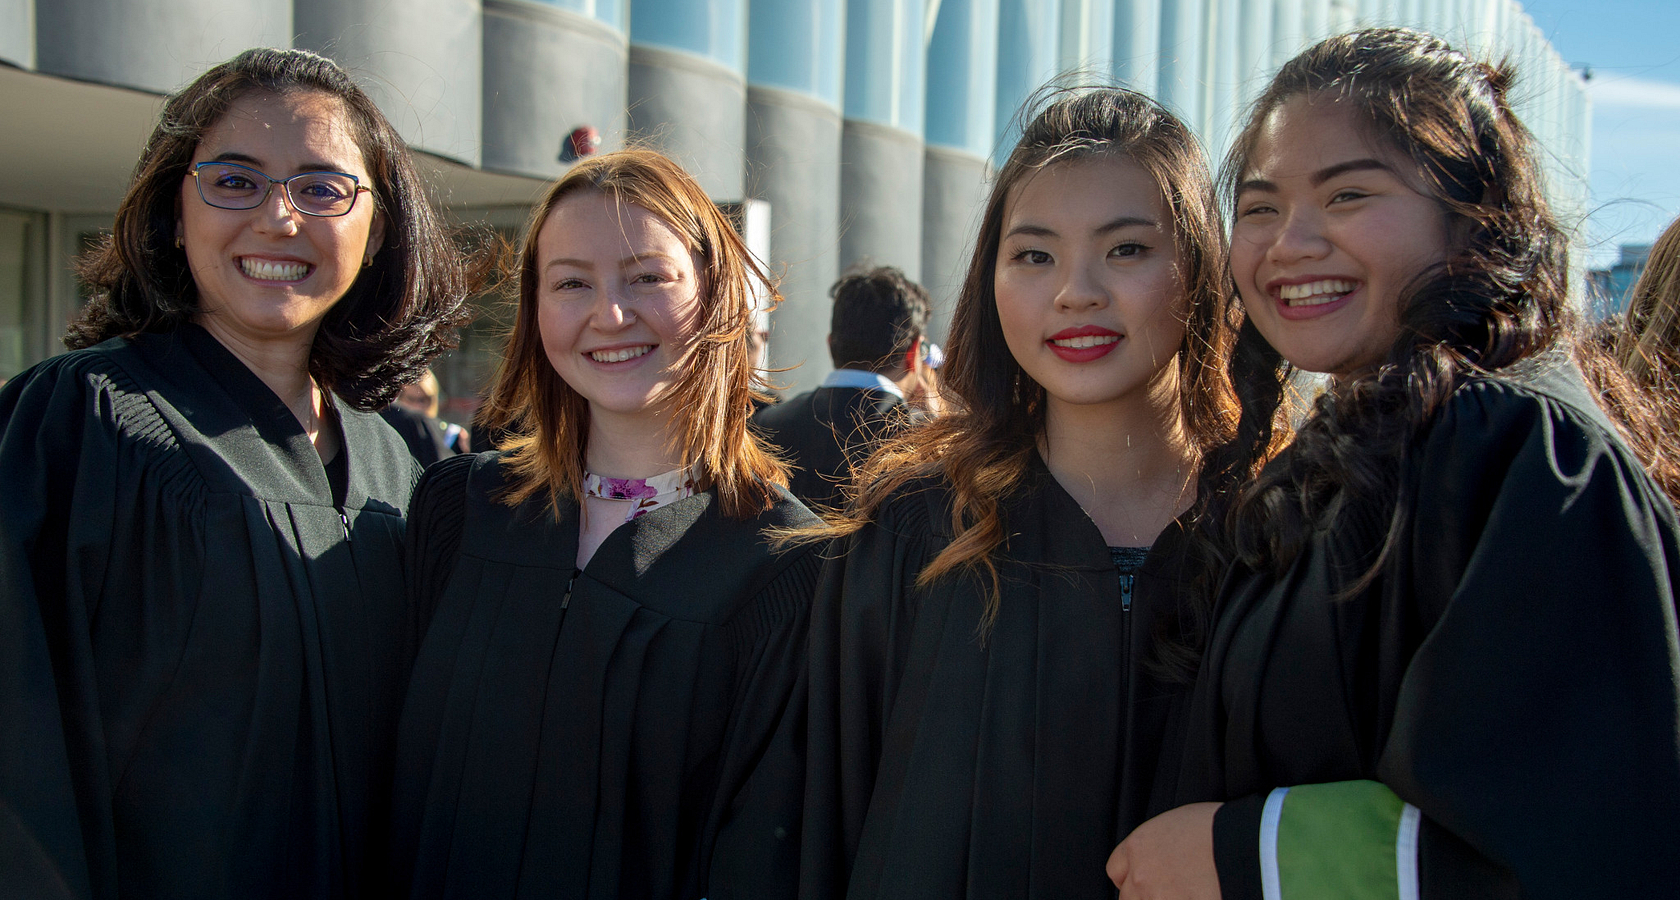 centennial college graduates smiling together at their convocation ceremony standing outside on a sunny day